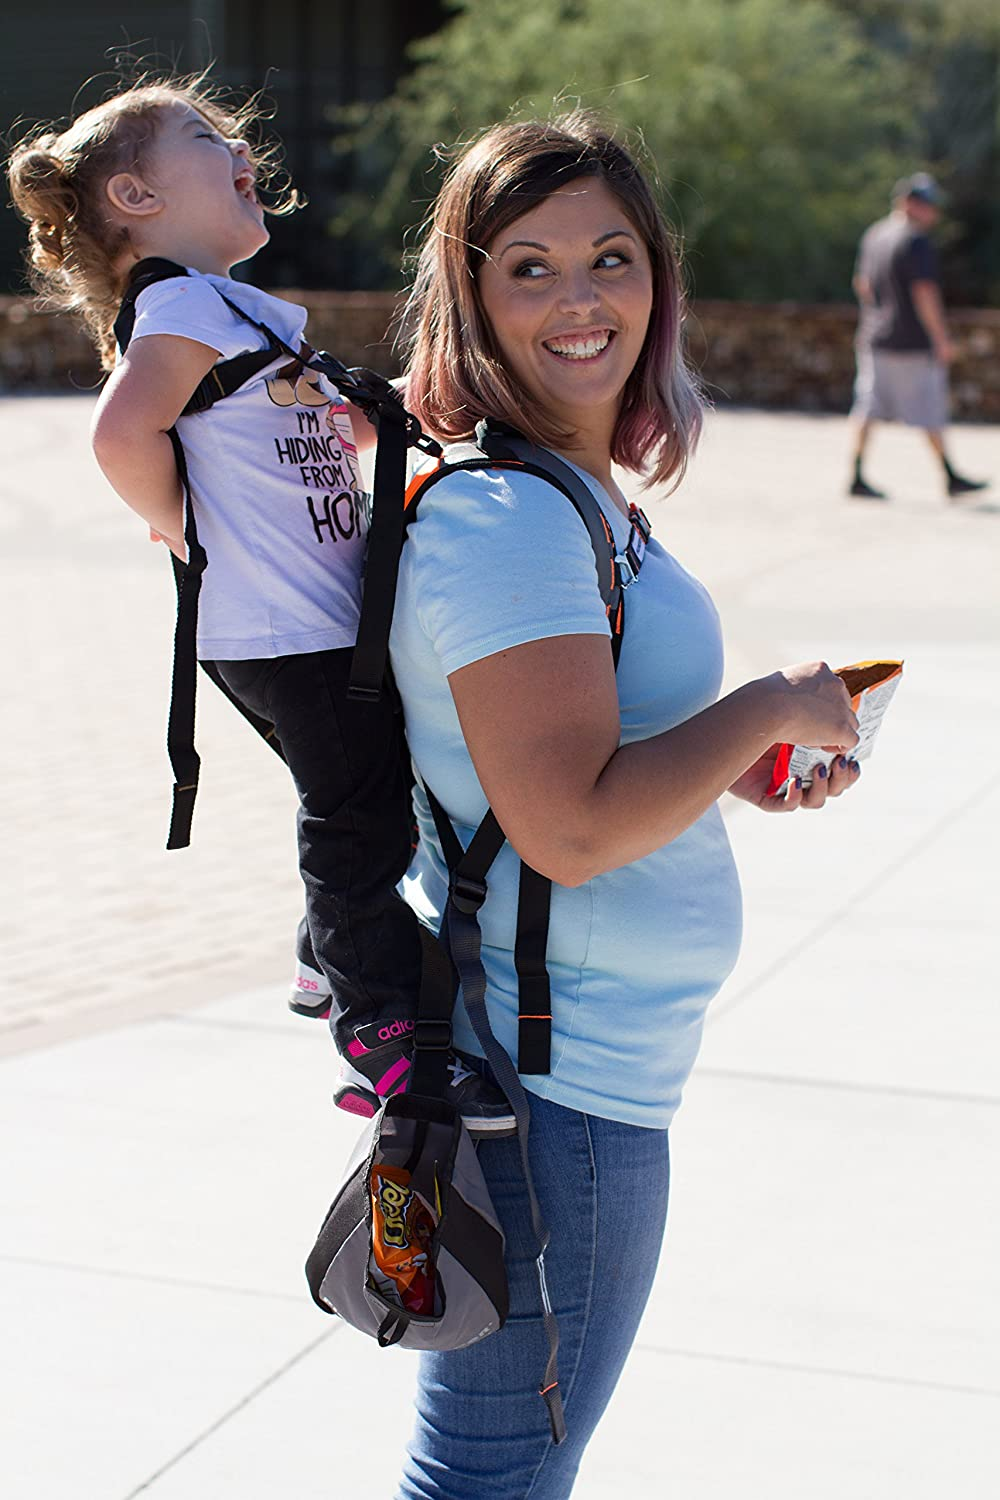 Child Toddler Carrier Backpack for Hiking Trails Camping Piggyback Rider Scout Model Fitness Travel